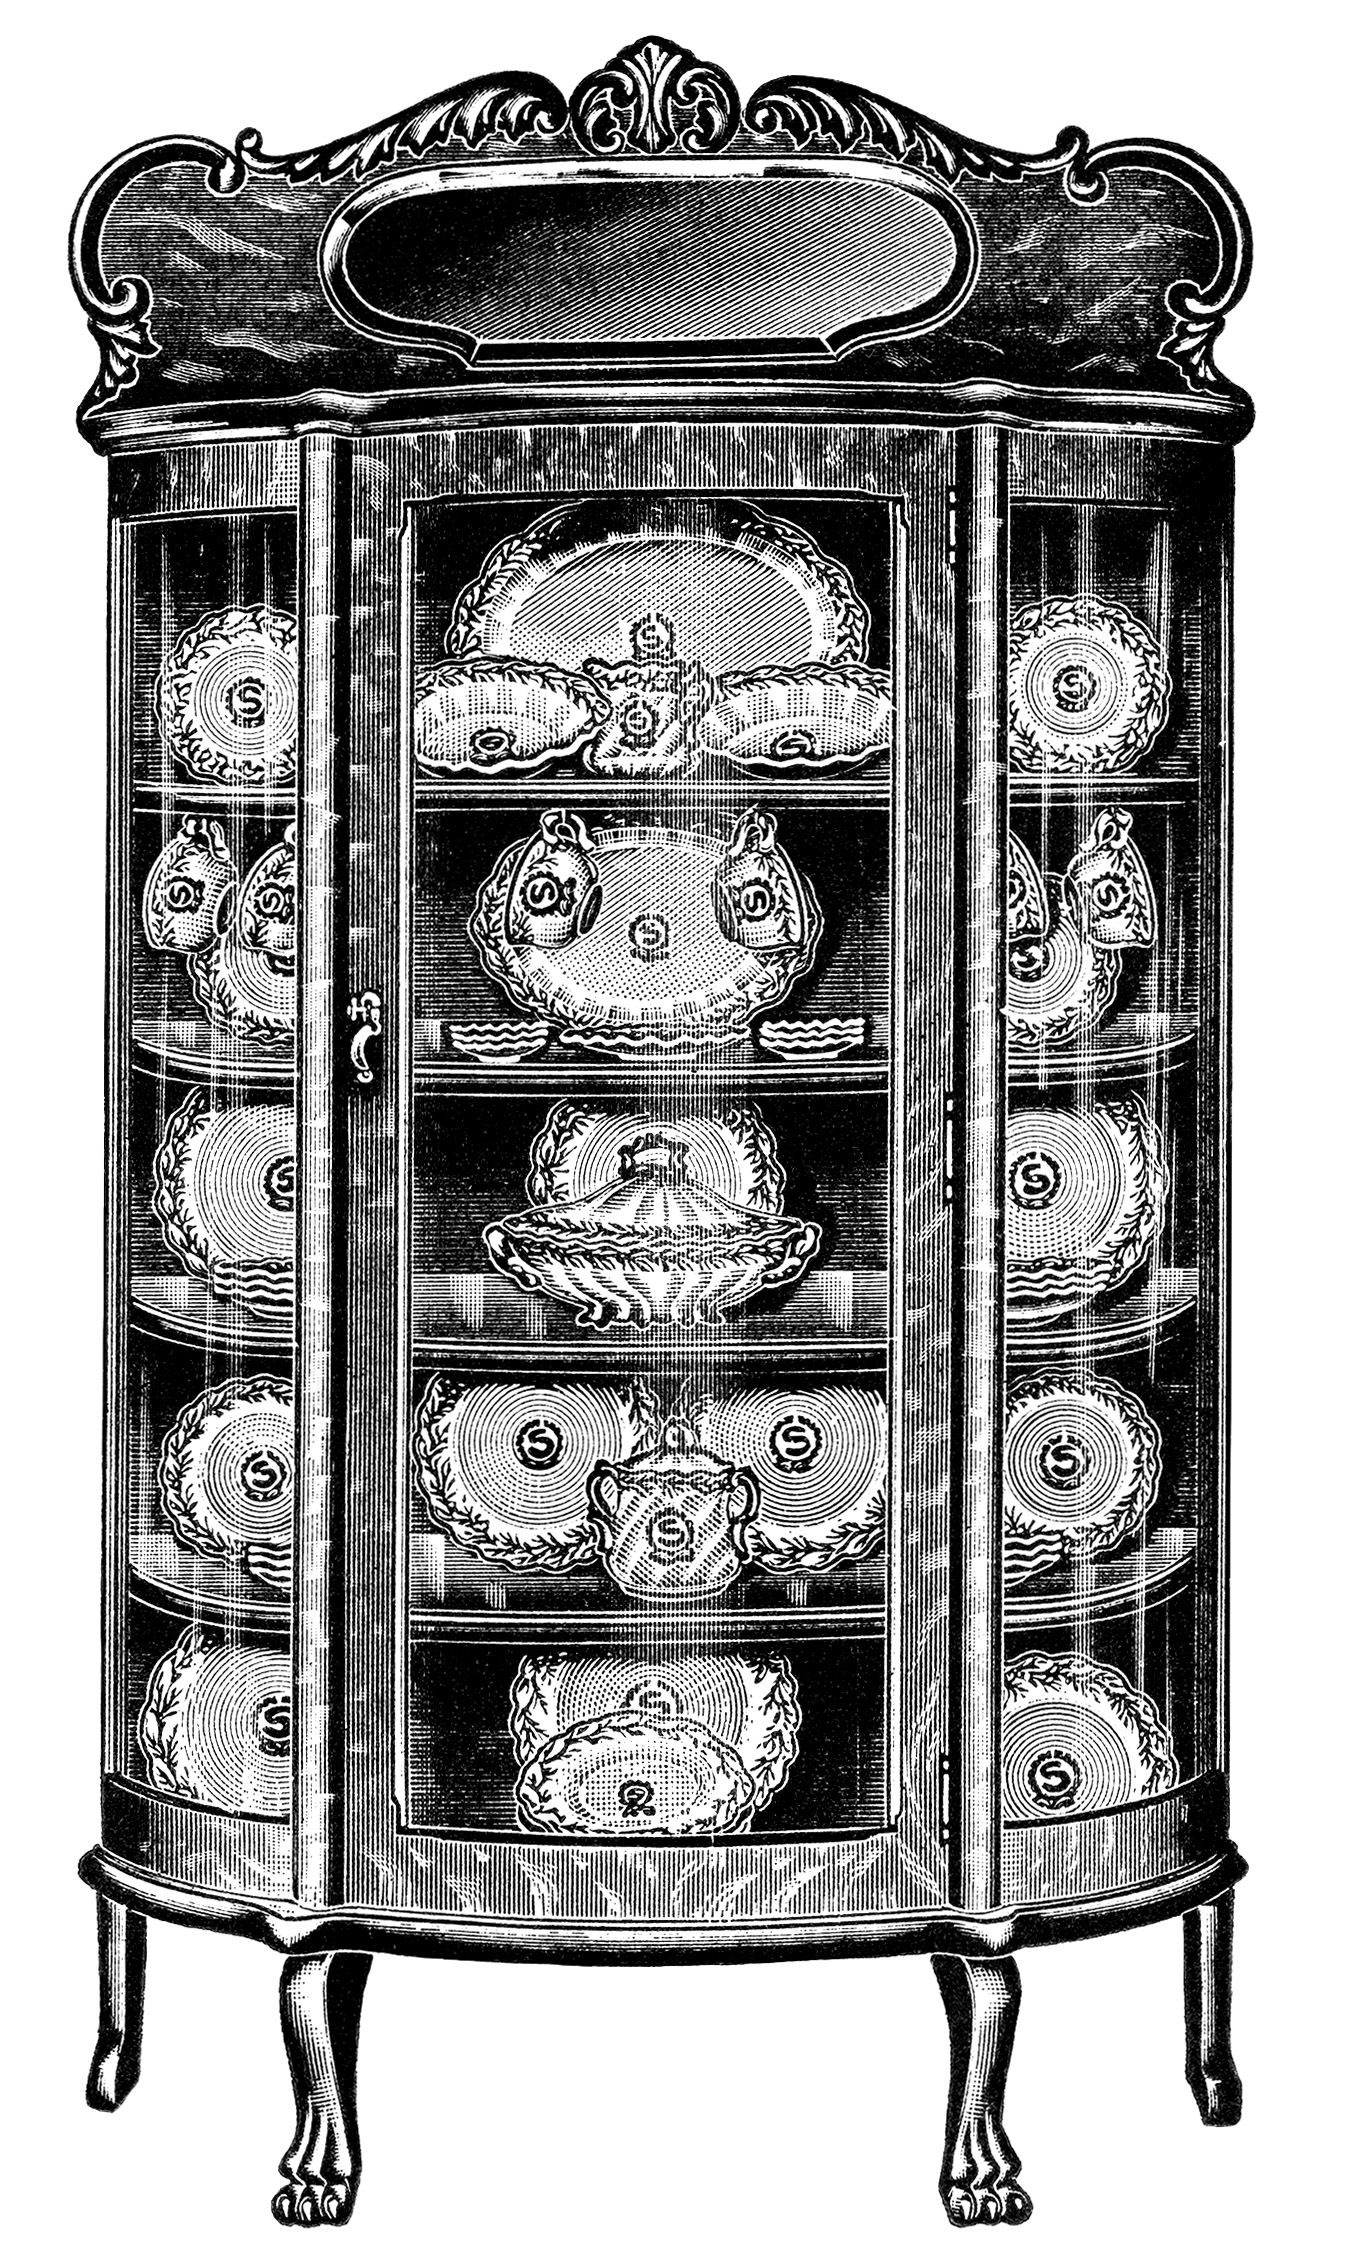 China Cabinets From The Page Vintage Kitchen Clipart Black And White Clip Art Antique Furniture Image Printable